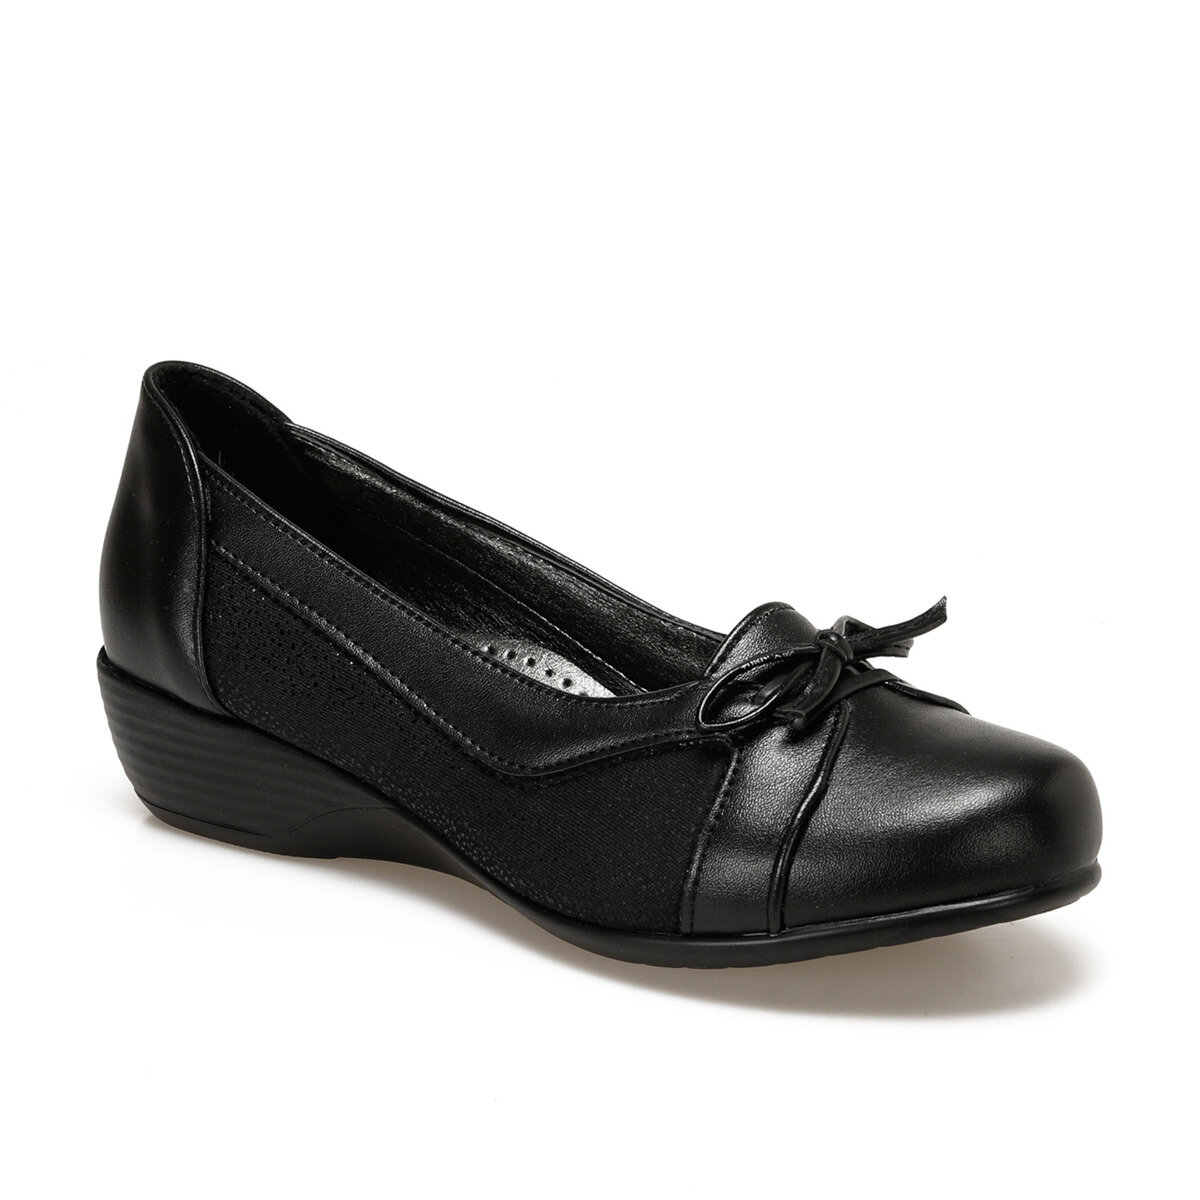 FLO 161006.Z Black Women Shoes Polaris